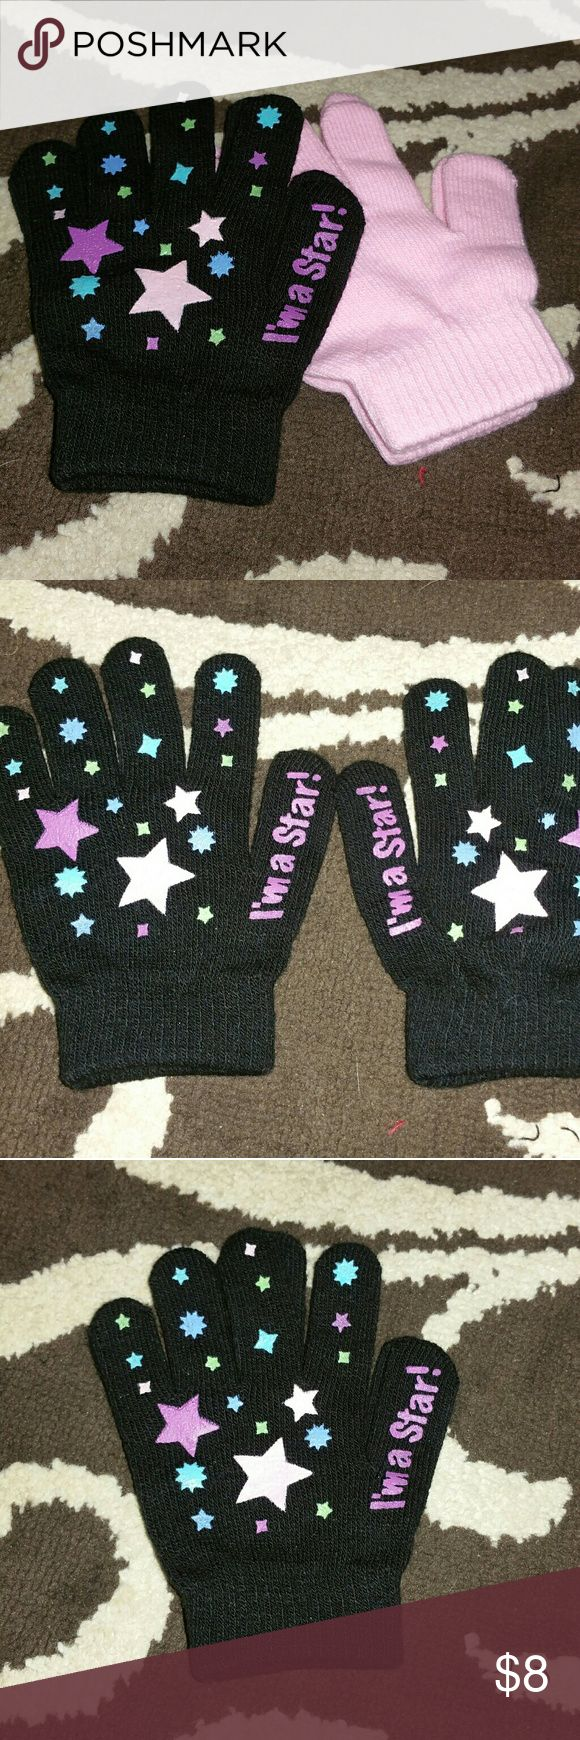 🎈SALE Girl's Gloves I'm A STAR, 2 PAIRS  Girl's Gloves,  One size fits All,  Color's  Pink, Black,  NWOT.  Never worn,  Cute looking Gloves for these up coming cold winter Day's!!! Have any questions before purchase just ask and I'll try to answer!!!  All sales are final!!!  NO RETURNS!!! Accessories Mittens